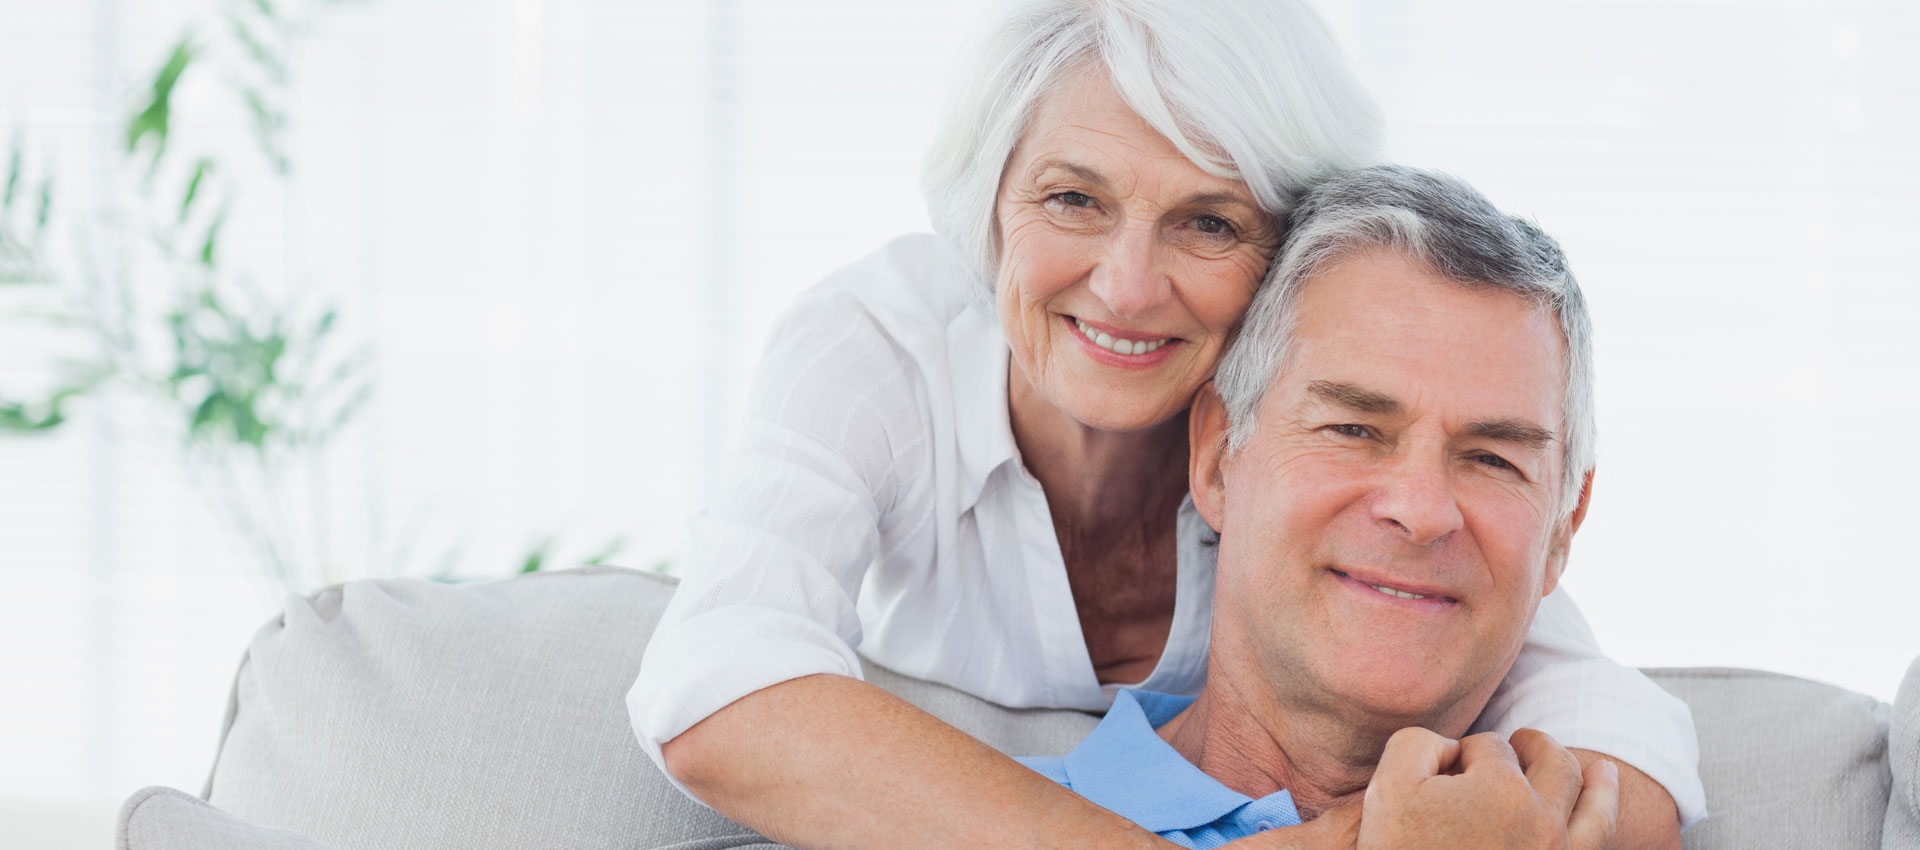 Online Dating Sites For 50+